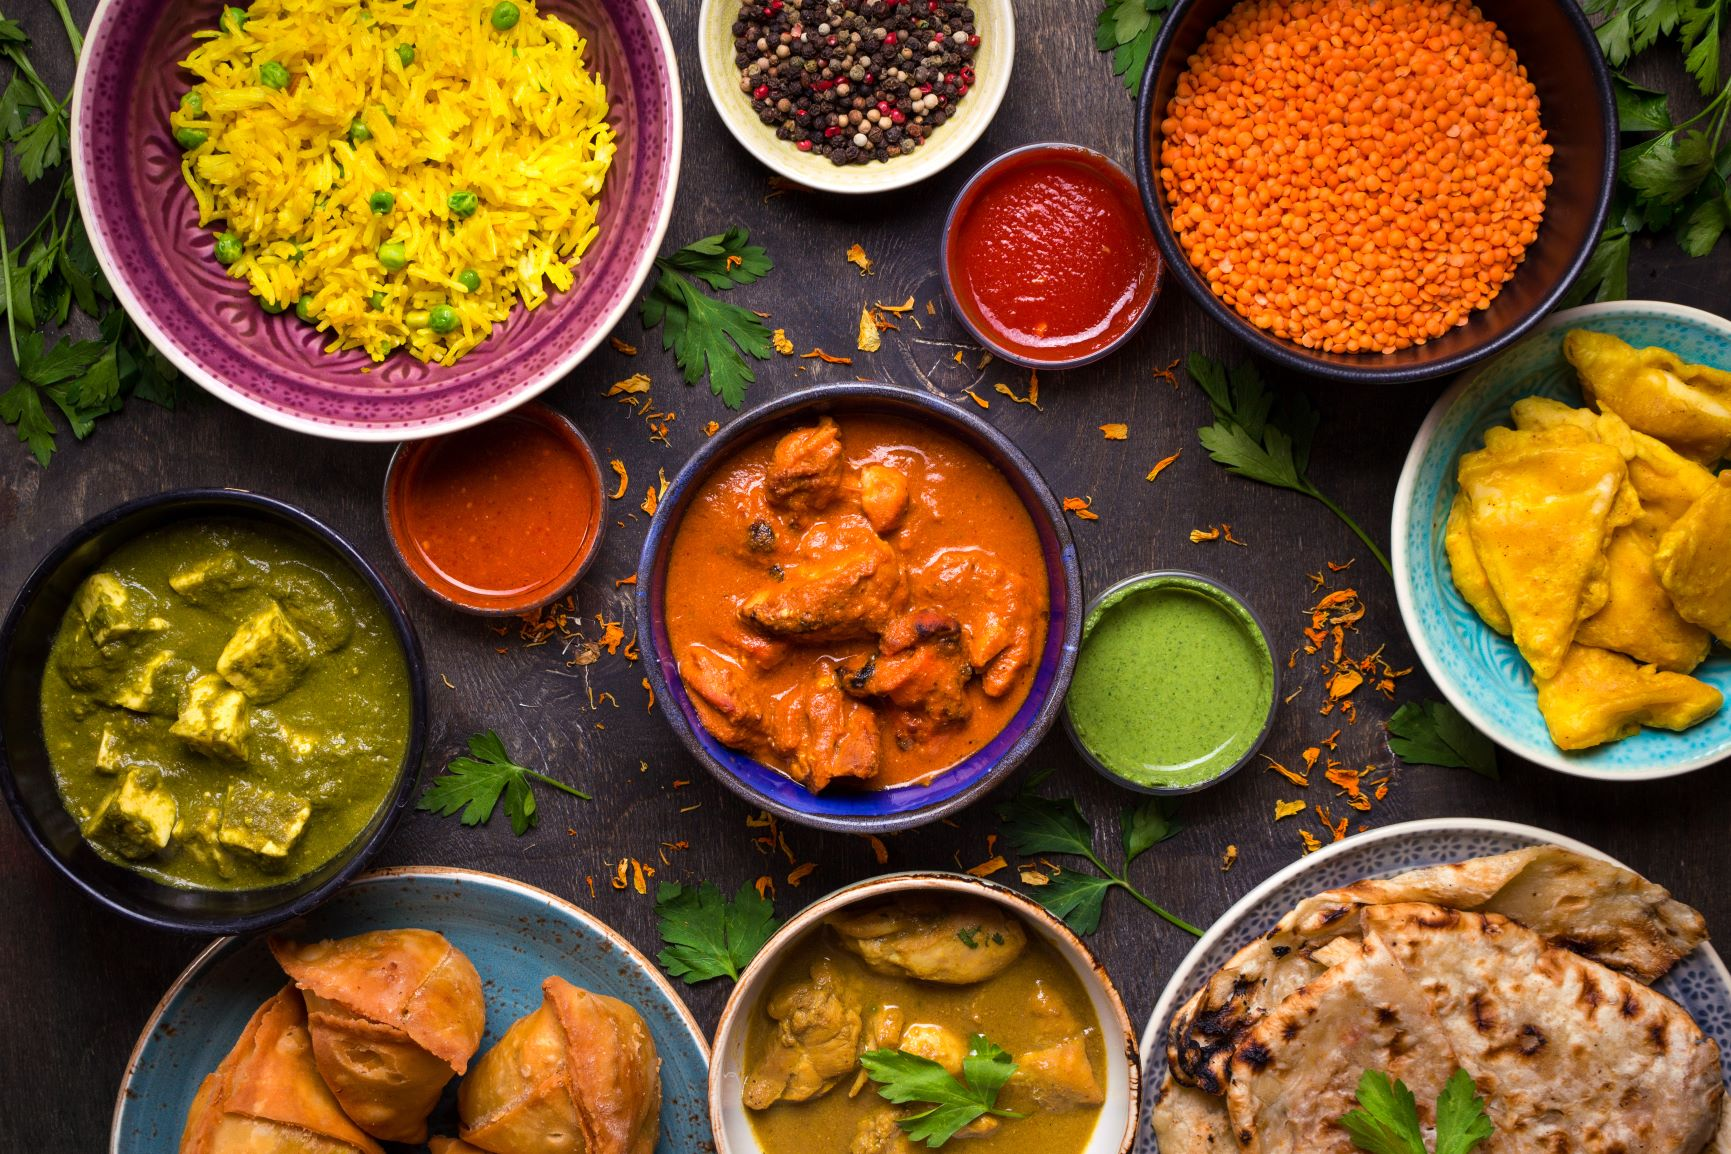 Enjoy the Indian cuisine on your Gap Year to India